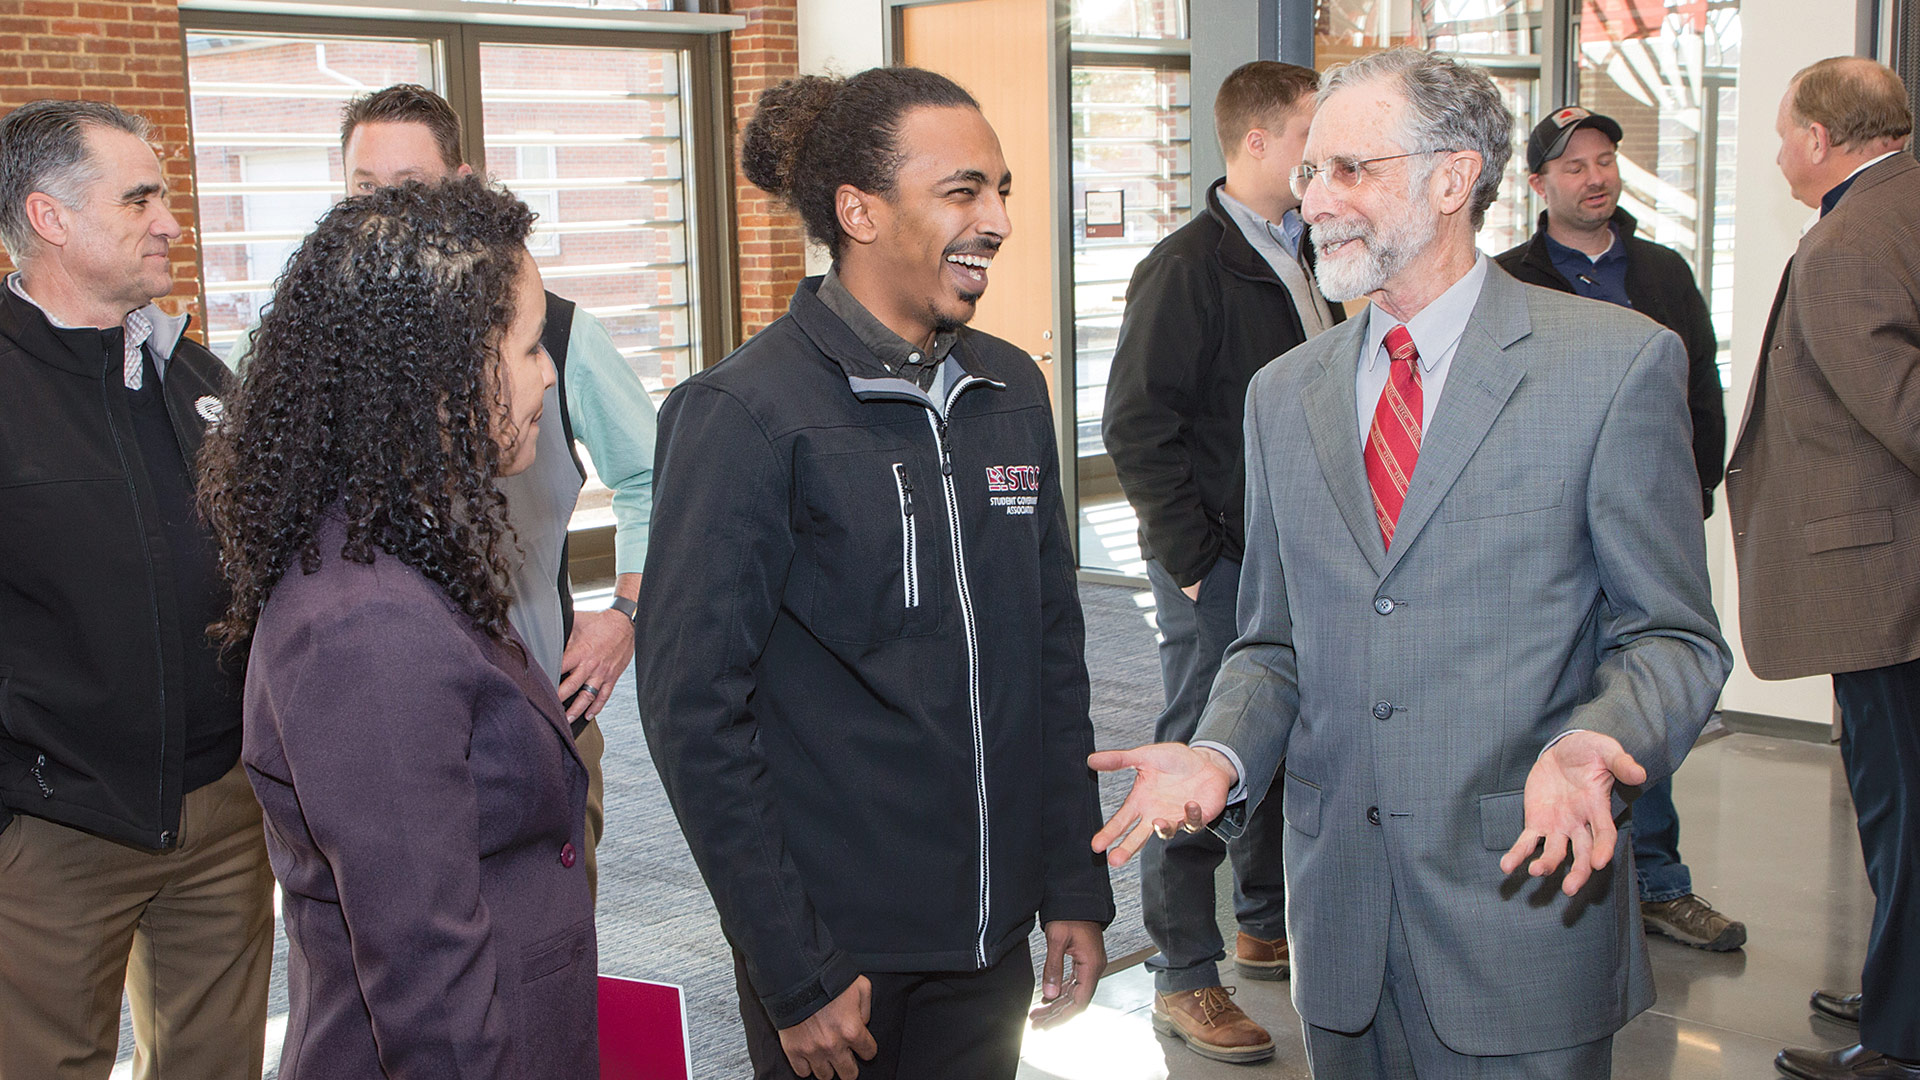 Rubenzahl chats with students Karolyn Burgos-Toribio and Mohammed Gabriel